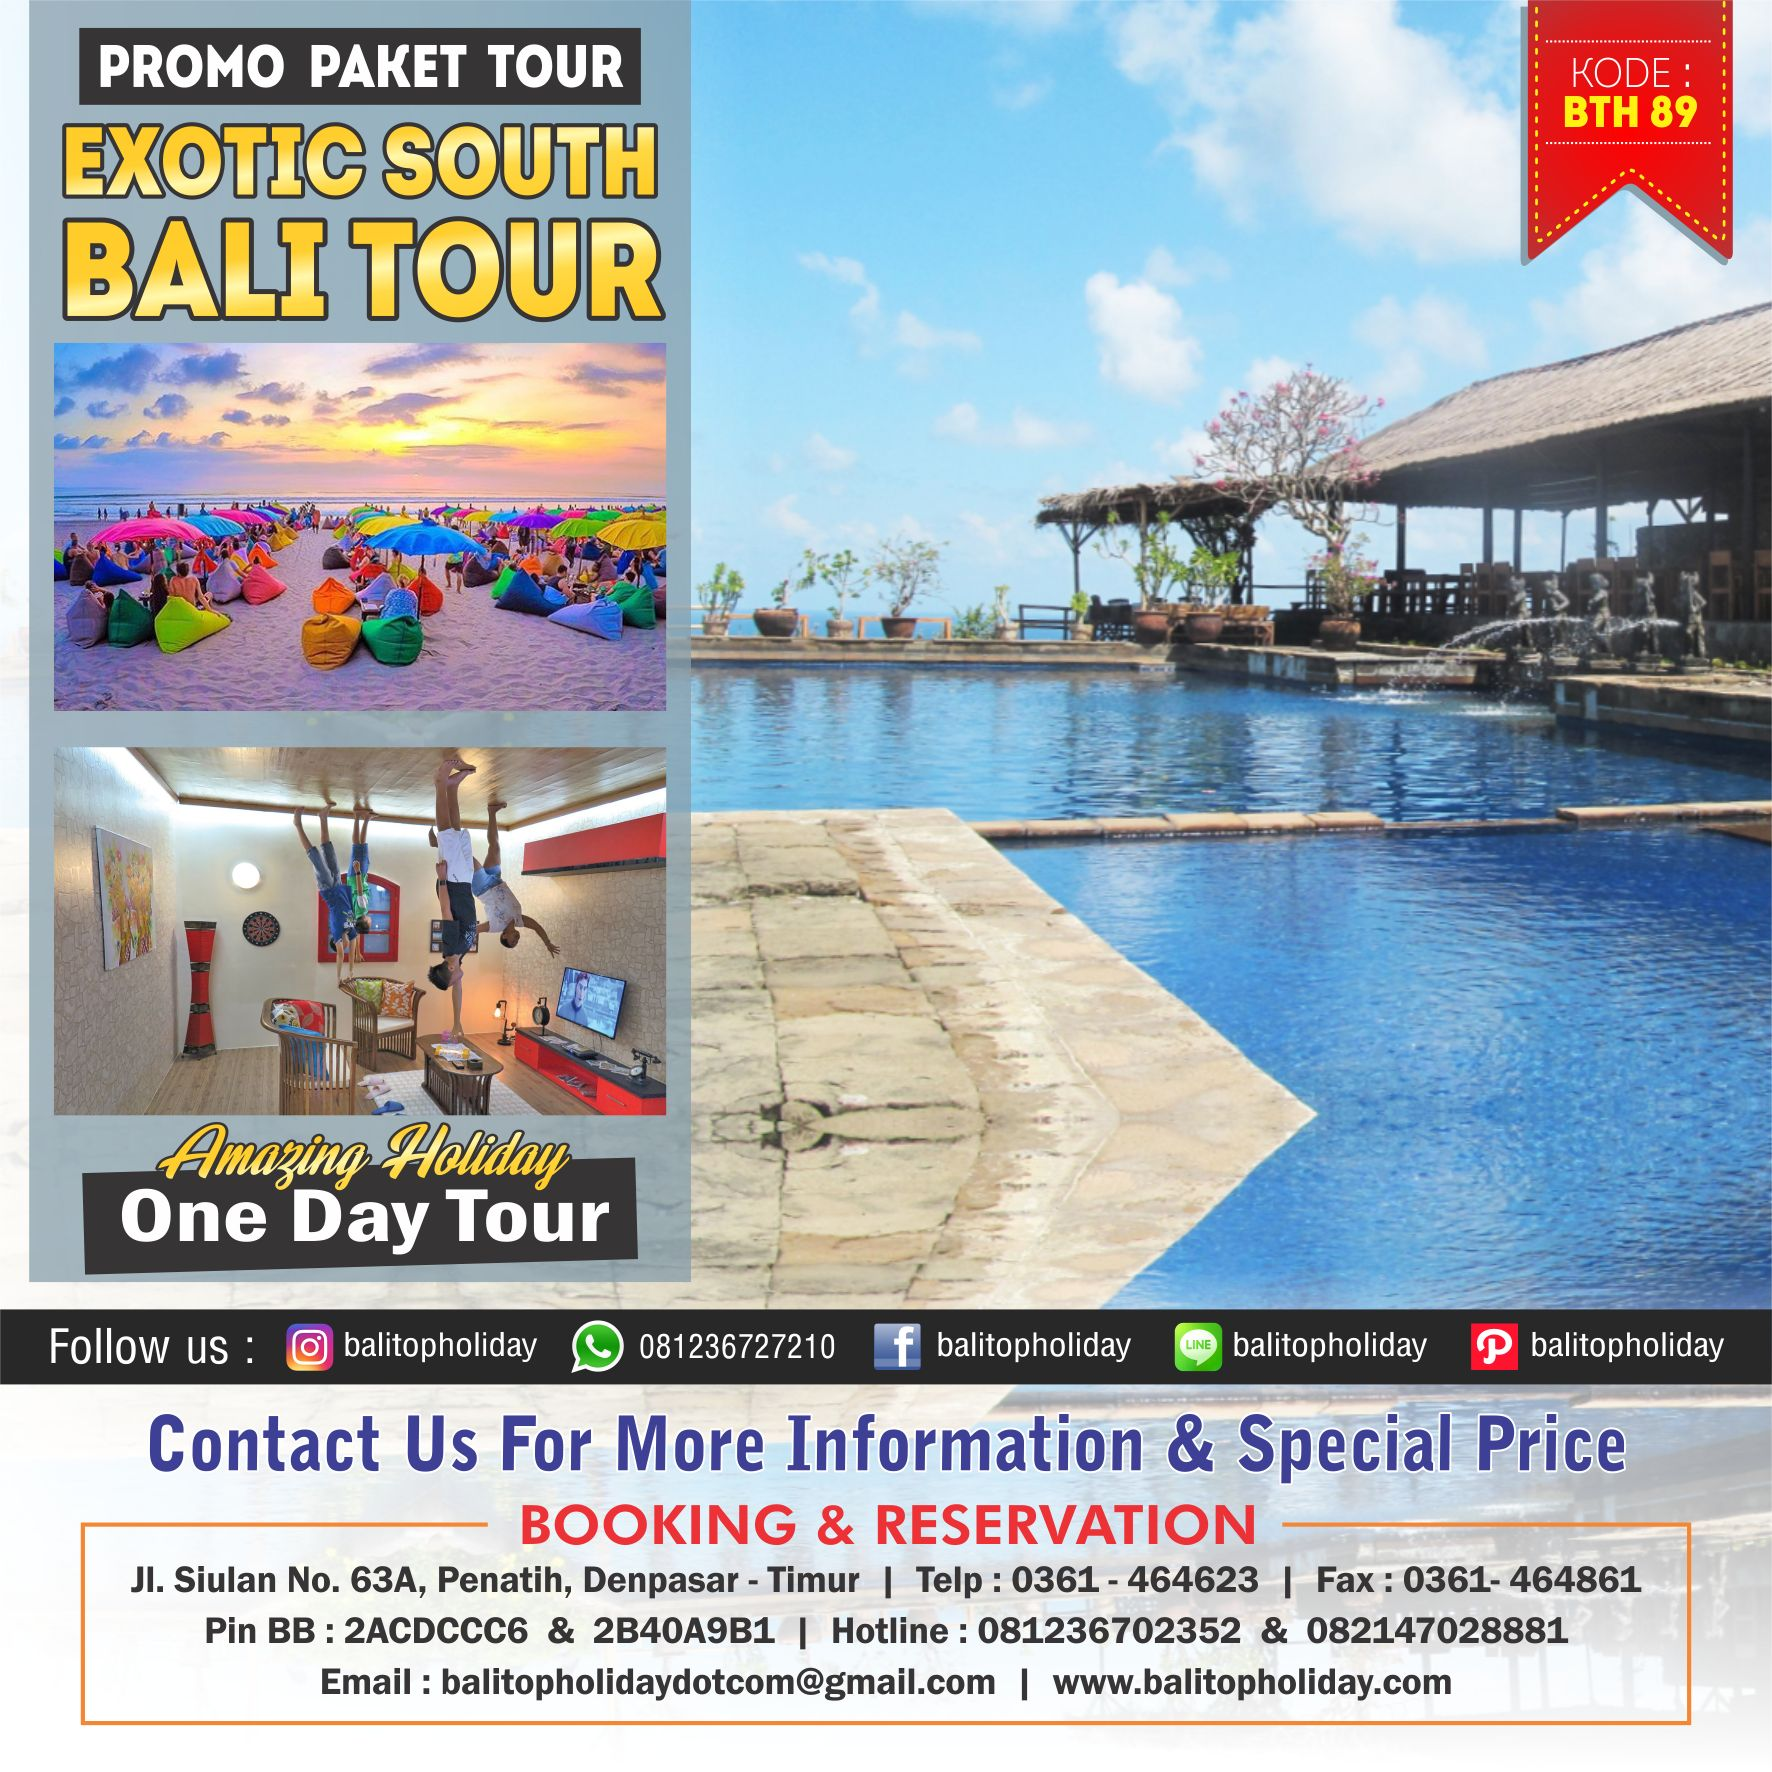 Exotic South Bali Tour BTH 89